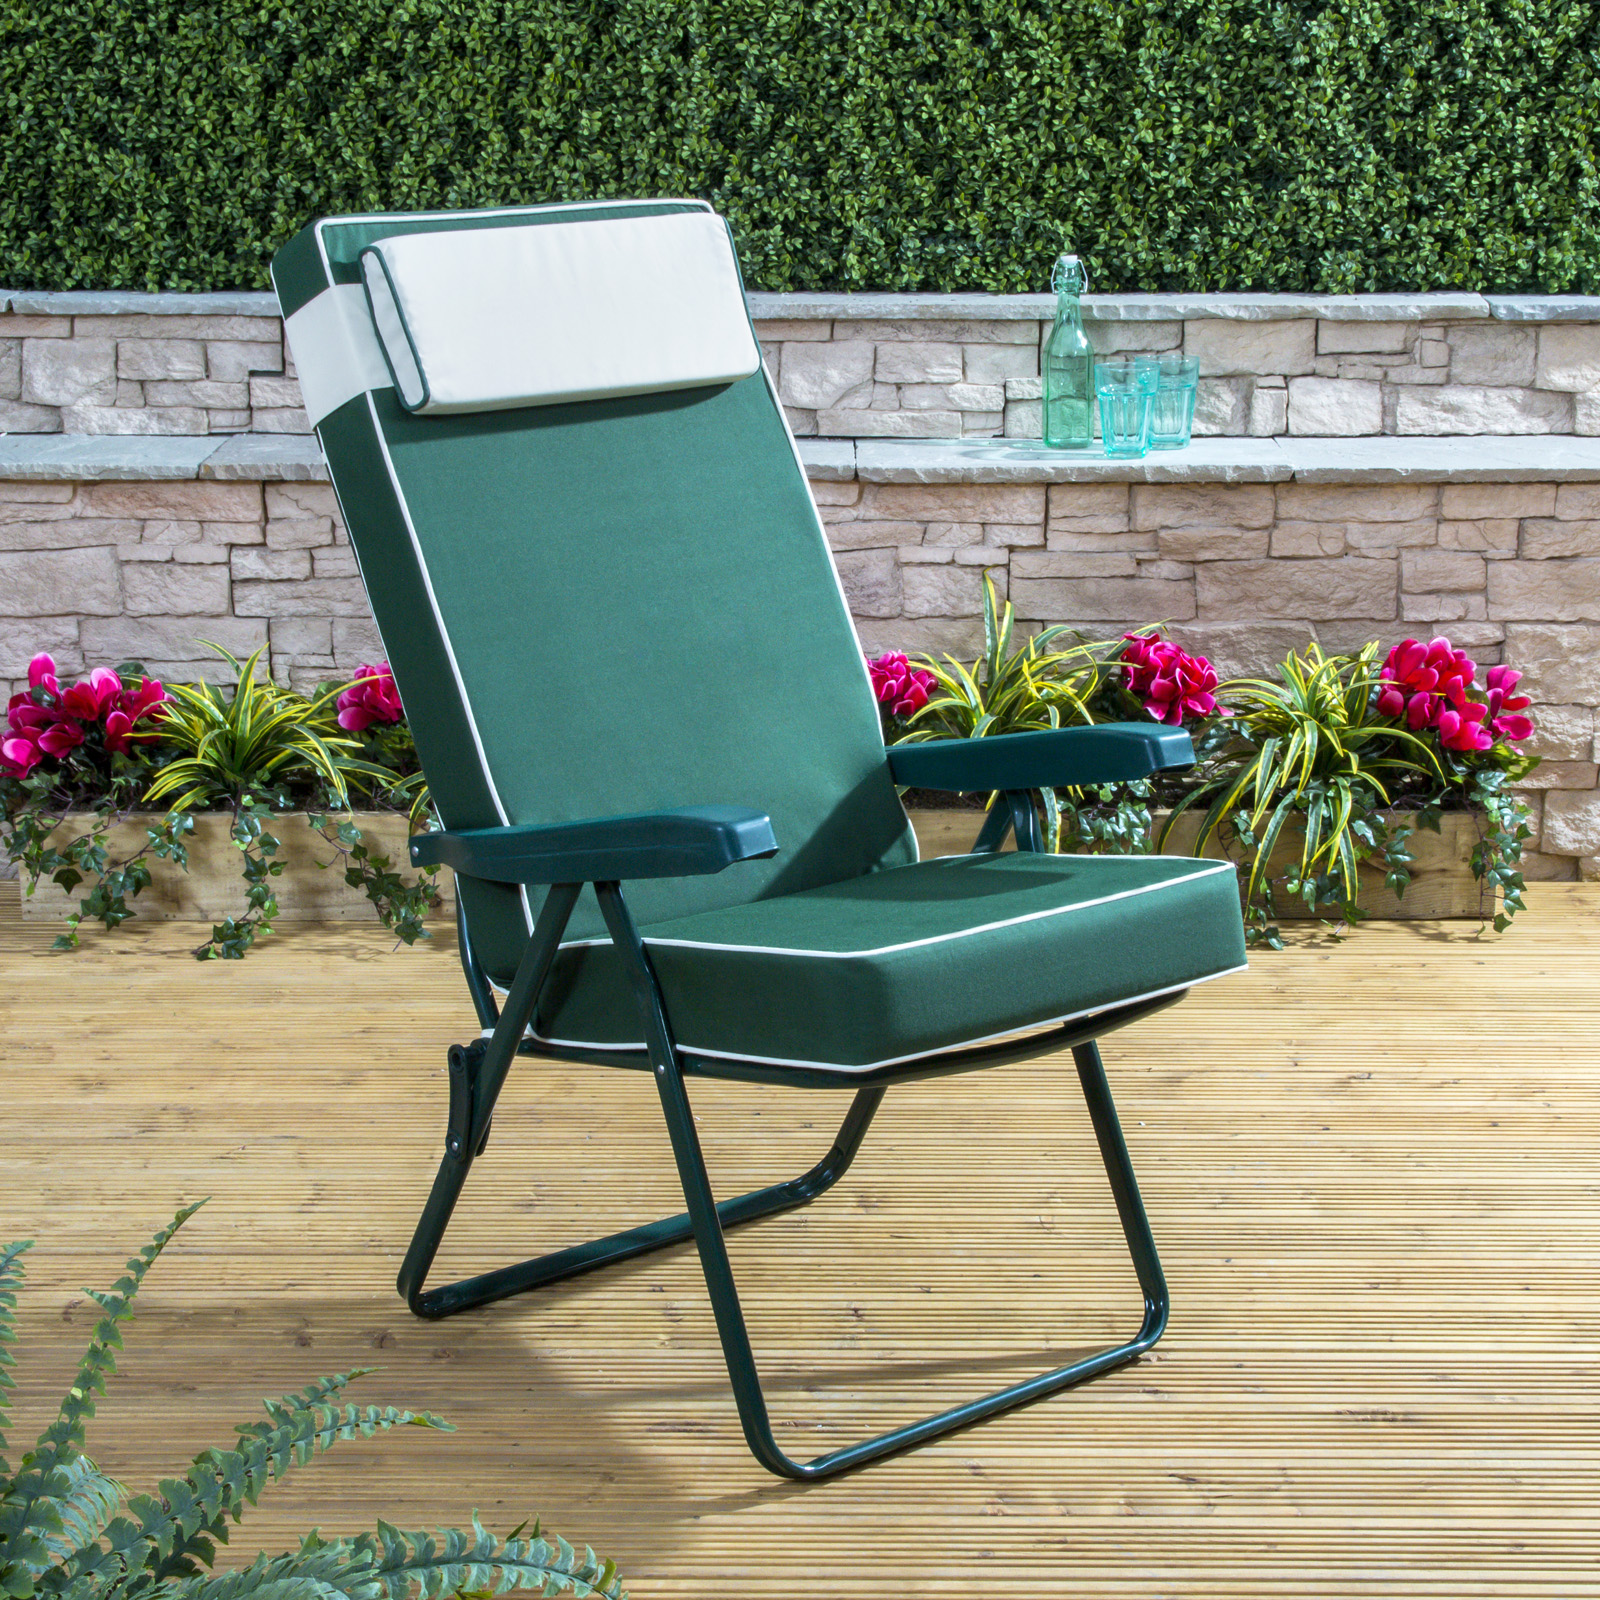 Garden Furniture Colours luxury garden recliner chair cushion - choice of colours | ebay